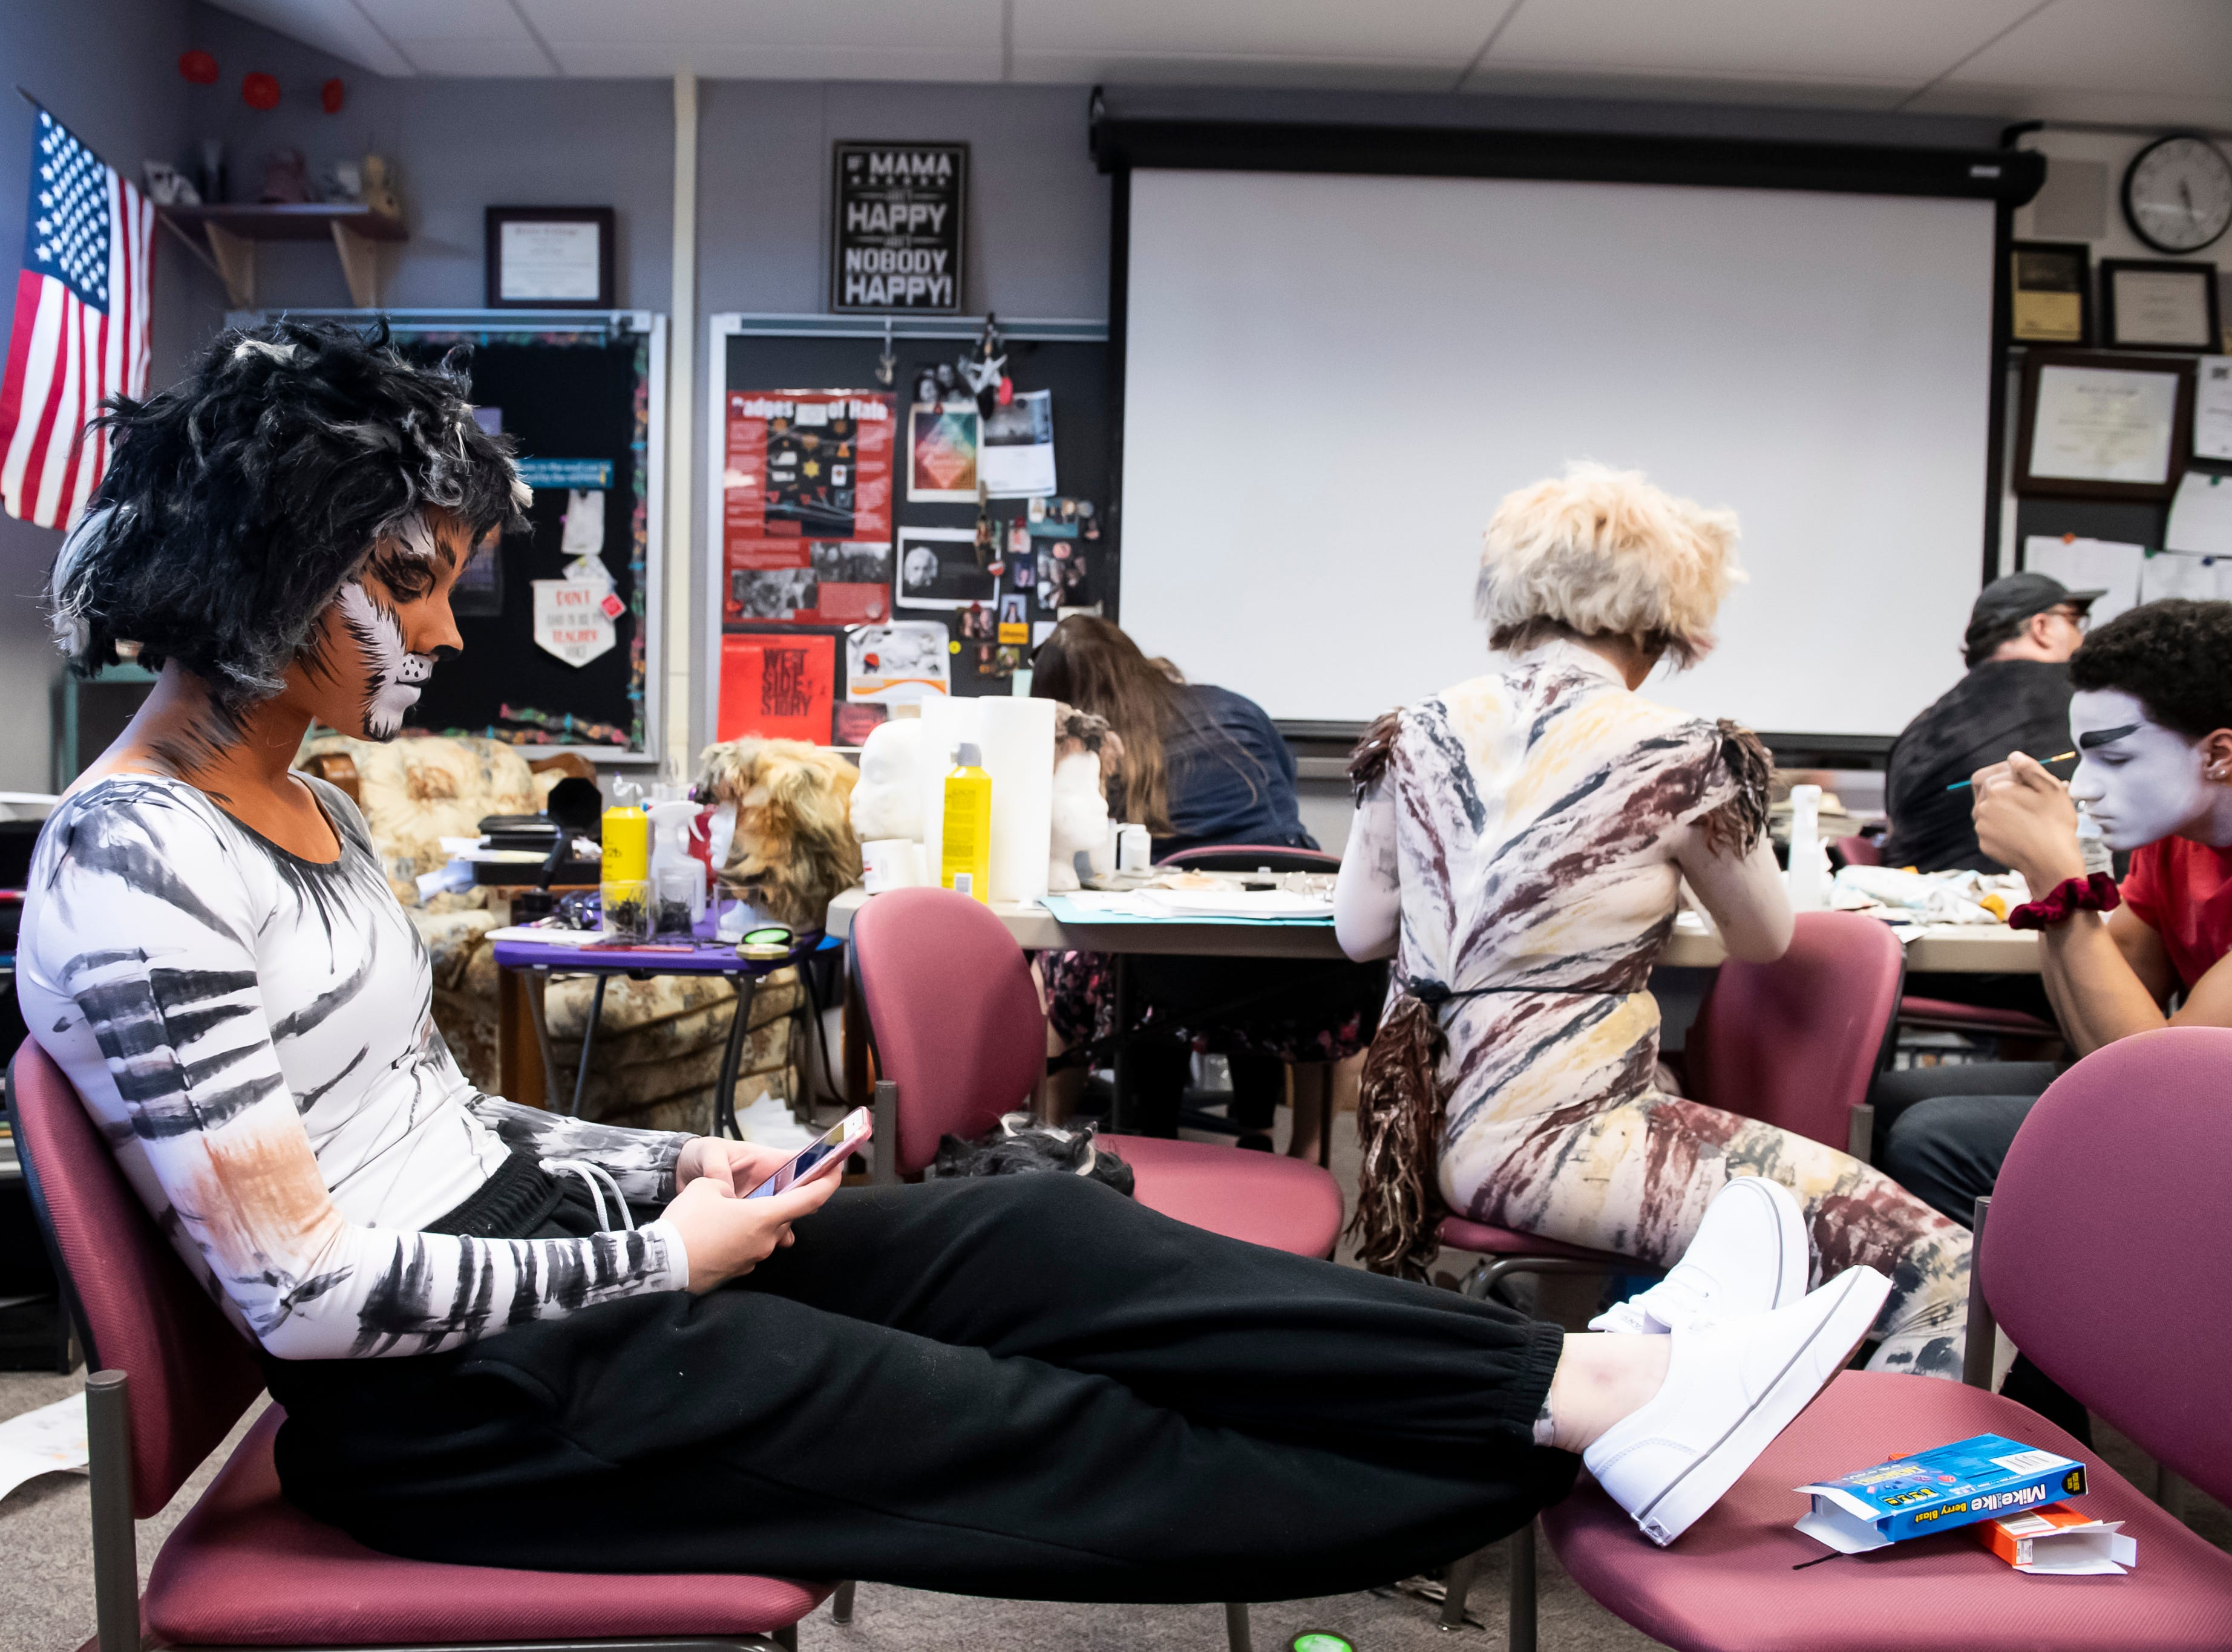 """Erin Homan checks her phone before the start of a dress rehearsal for Hanover High School's production of """"Cats"""" on Wednesday, April 10, 2019."""